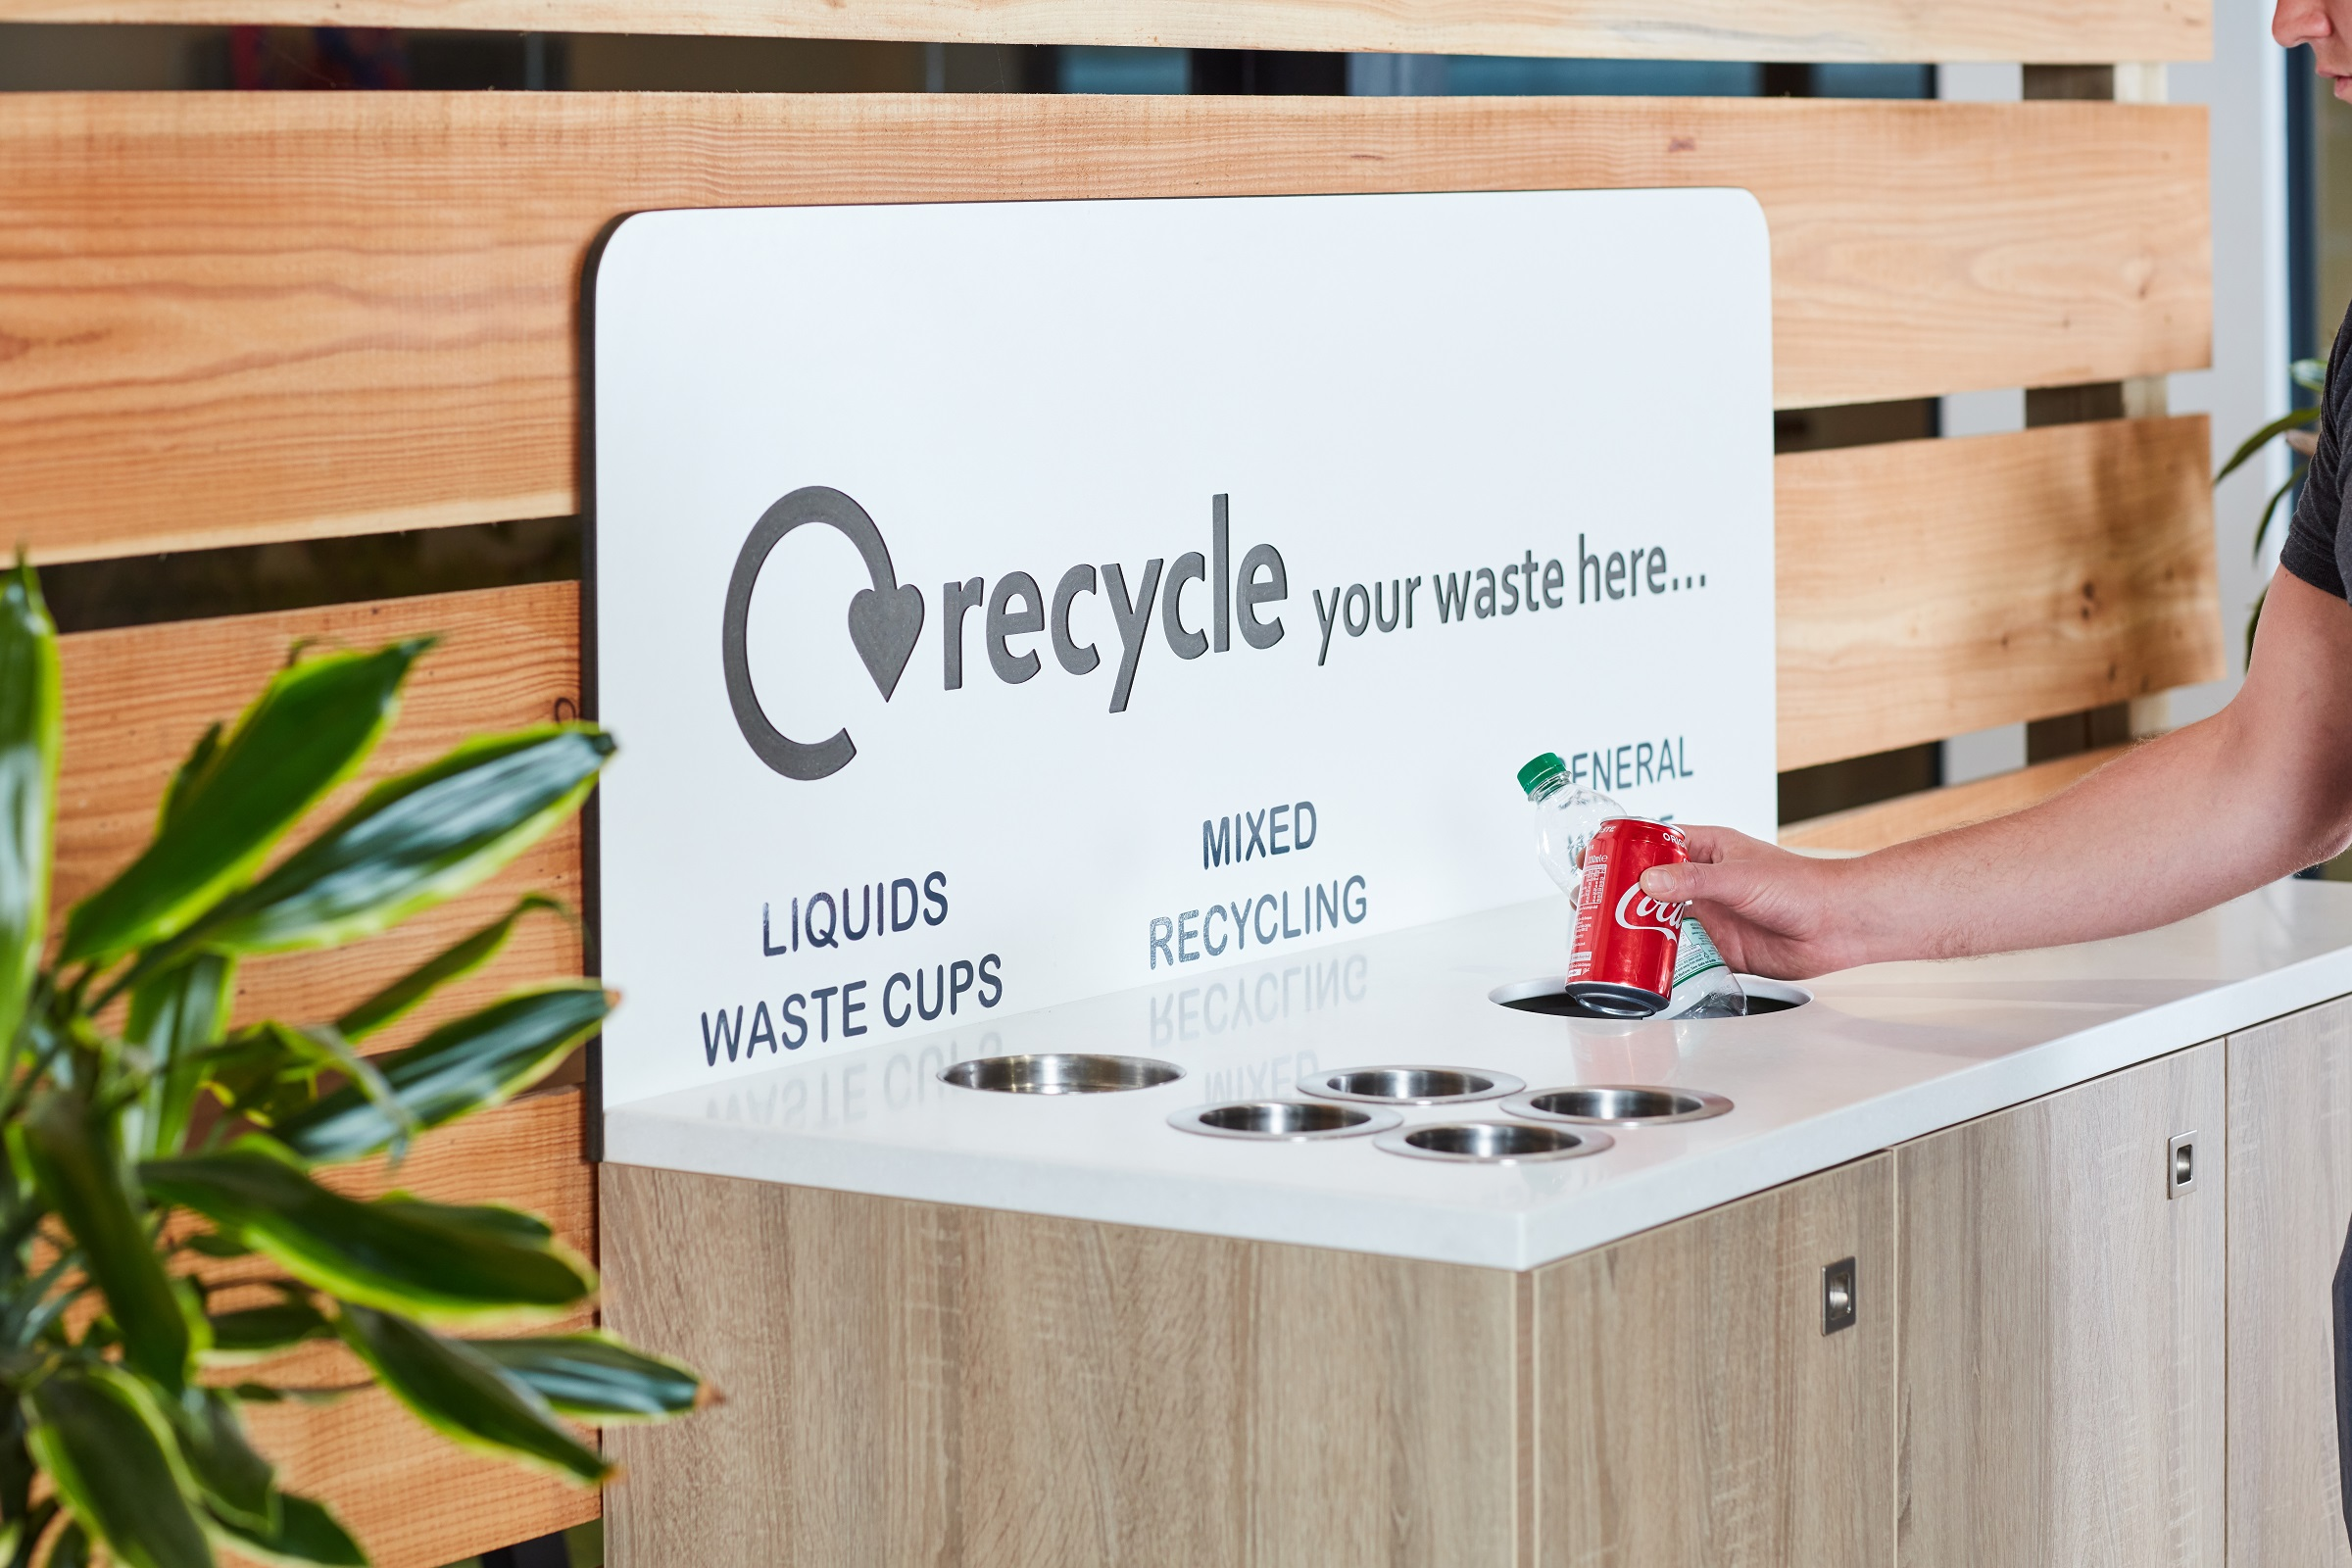 recycling metal cans and plastic bottles to help the environment